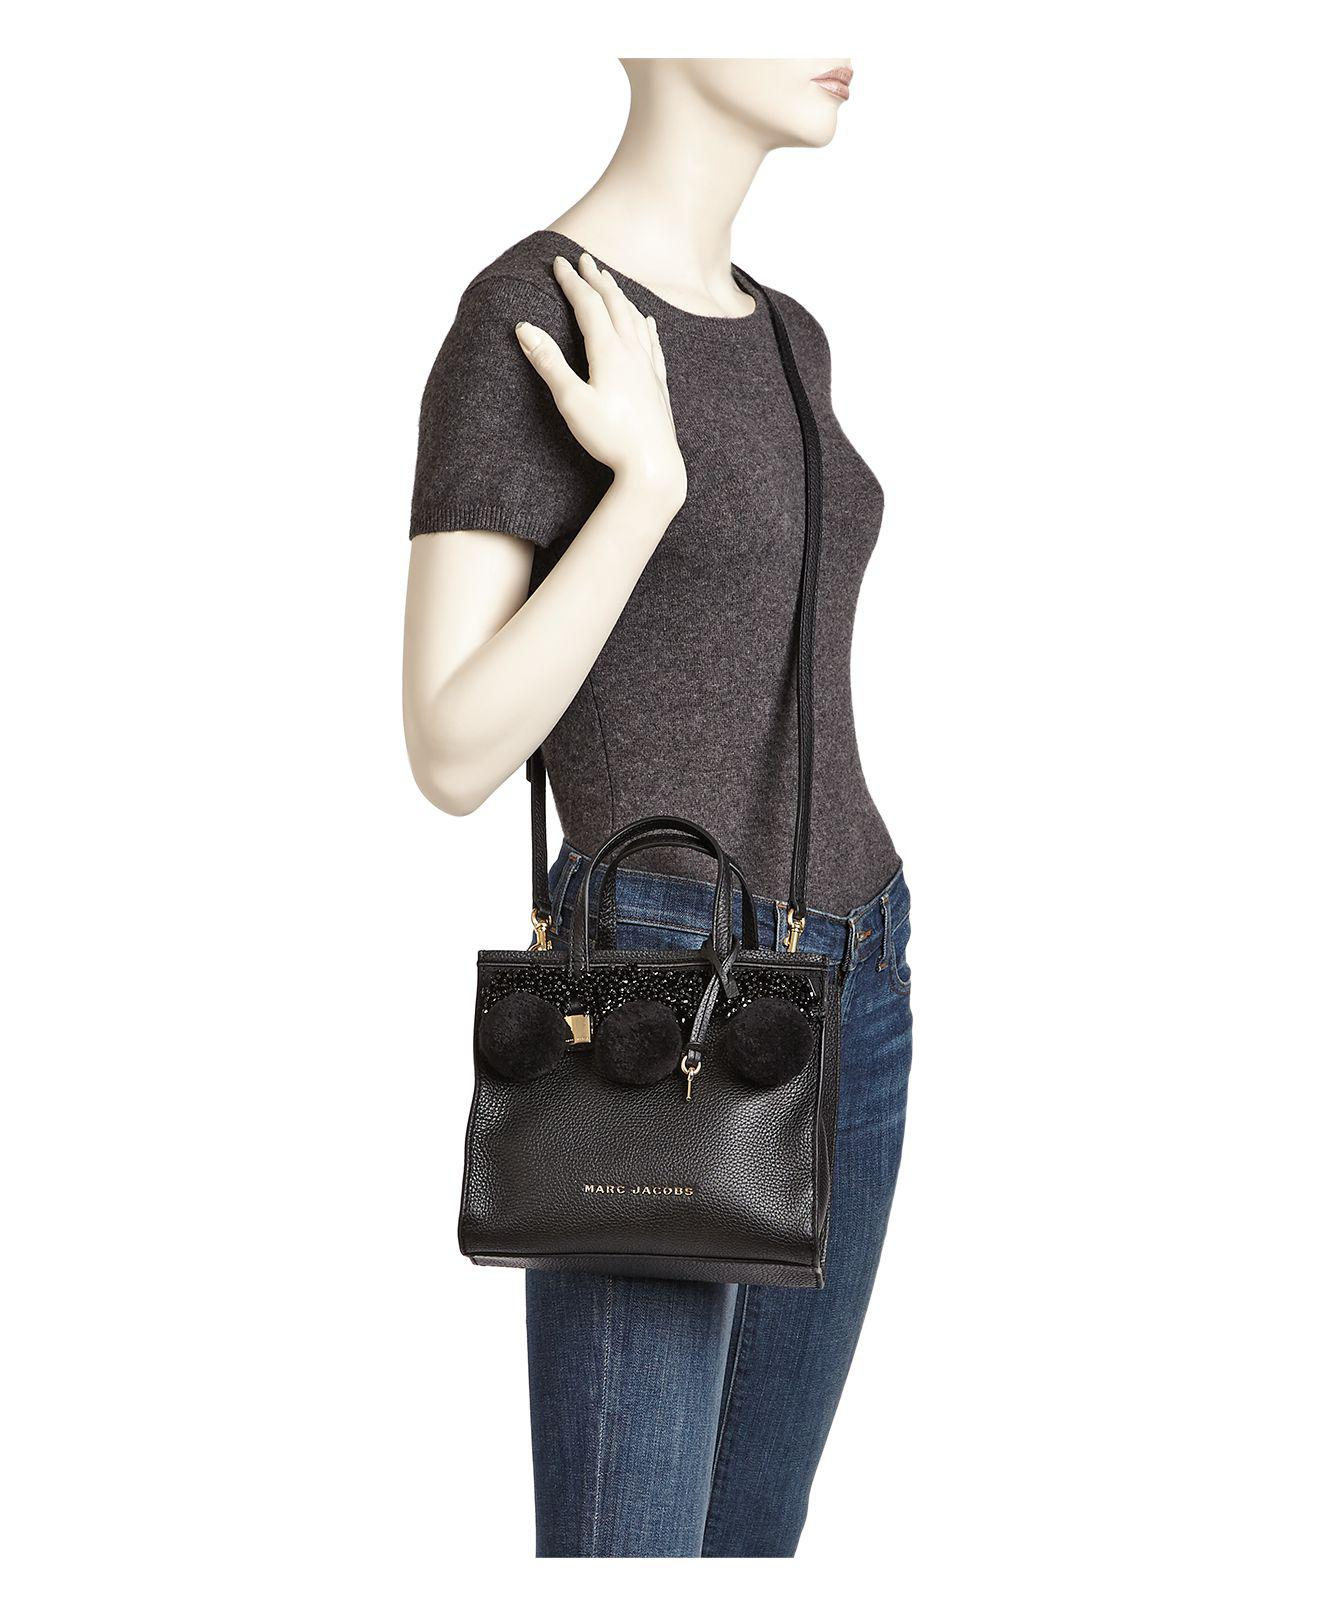 c34d82ee41df Lyst - Marc Jacobs The Mini Grind Beads   Poms Leather Crossbody in ...